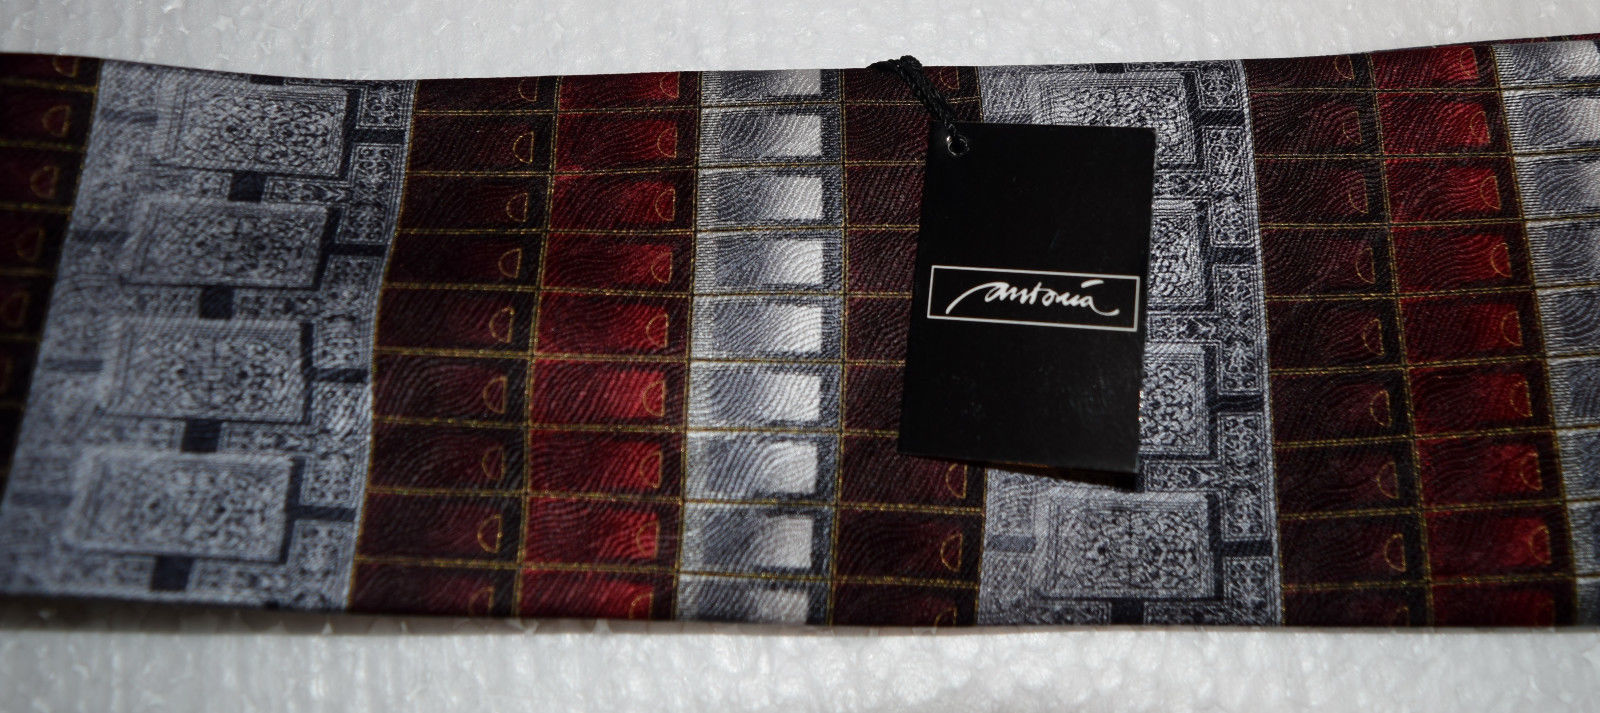 """NWT Antionia men's tie 59"""" X 4"""" Hand made tie 100% Silk New Very Nice Dry Clean image 4"""